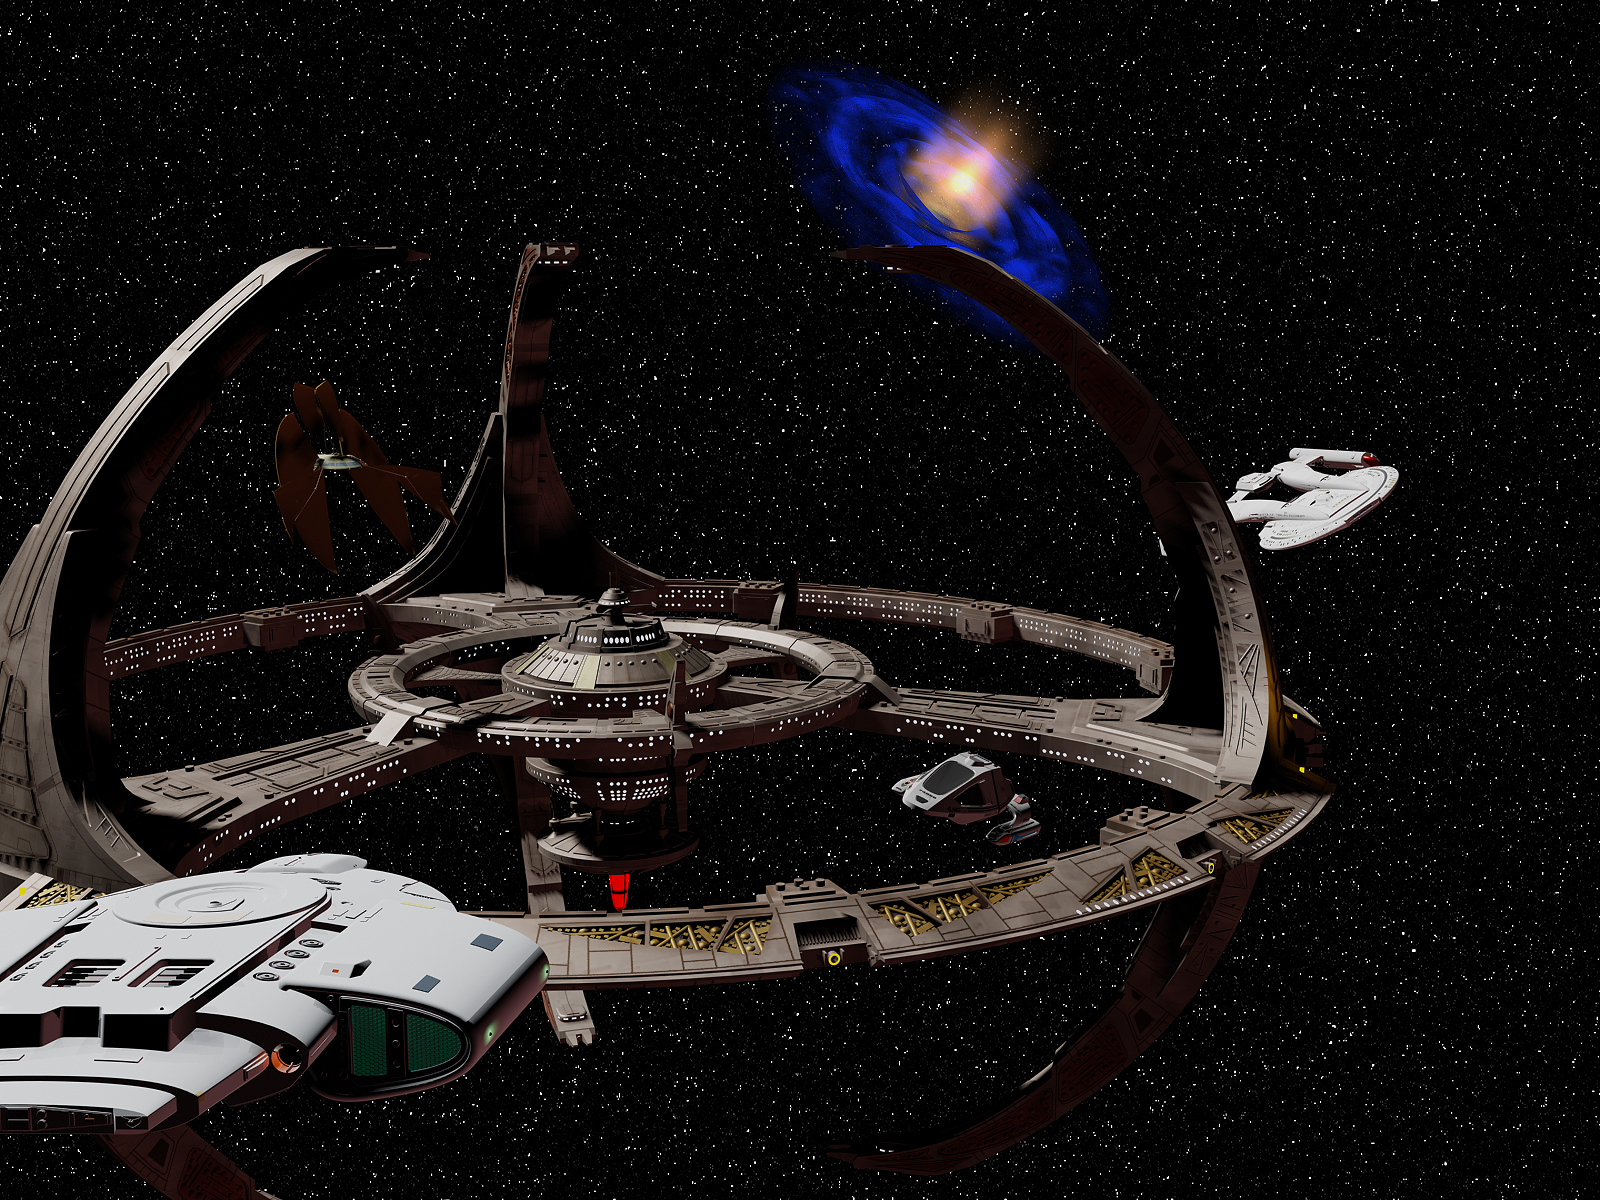 TV Show Star Trek Deep Space Nine Wallpaper 1600x1200